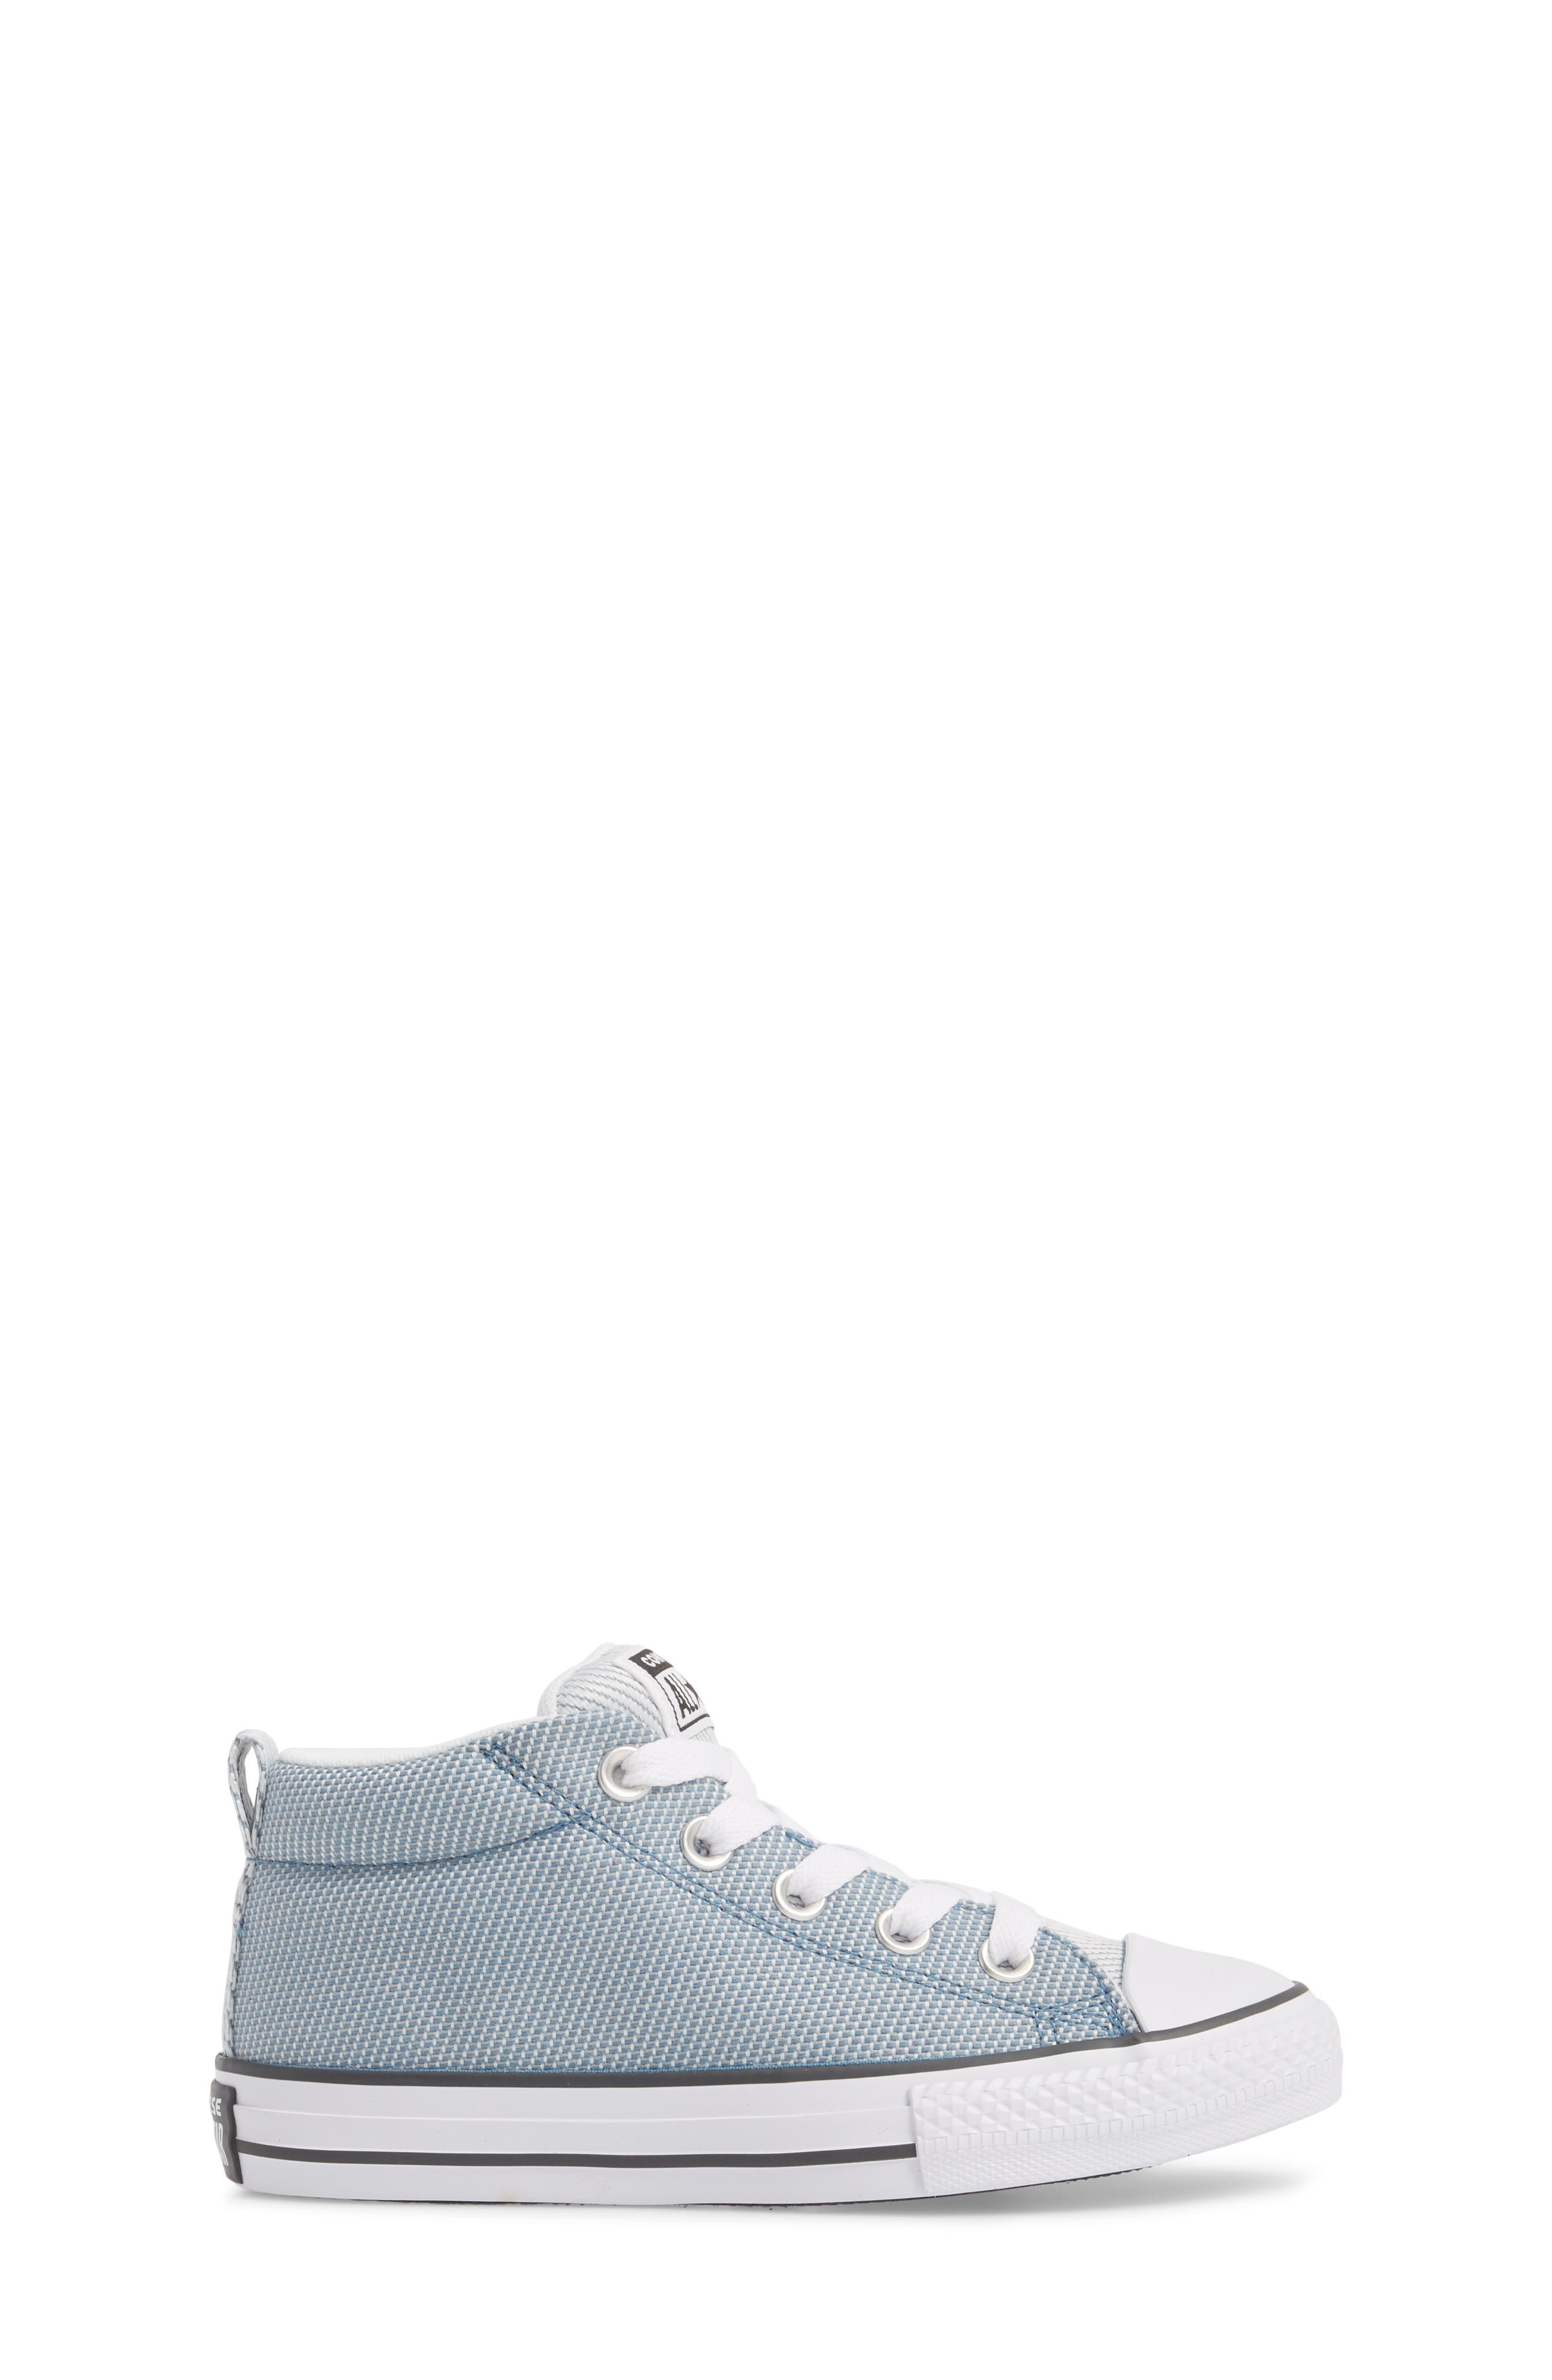 Chuck Taylor<sup>®</sup> All Star<sup>®</sup> Woven Street Mid Sneaker,                             Alternate thumbnail 3, color,                             Aegean Storm